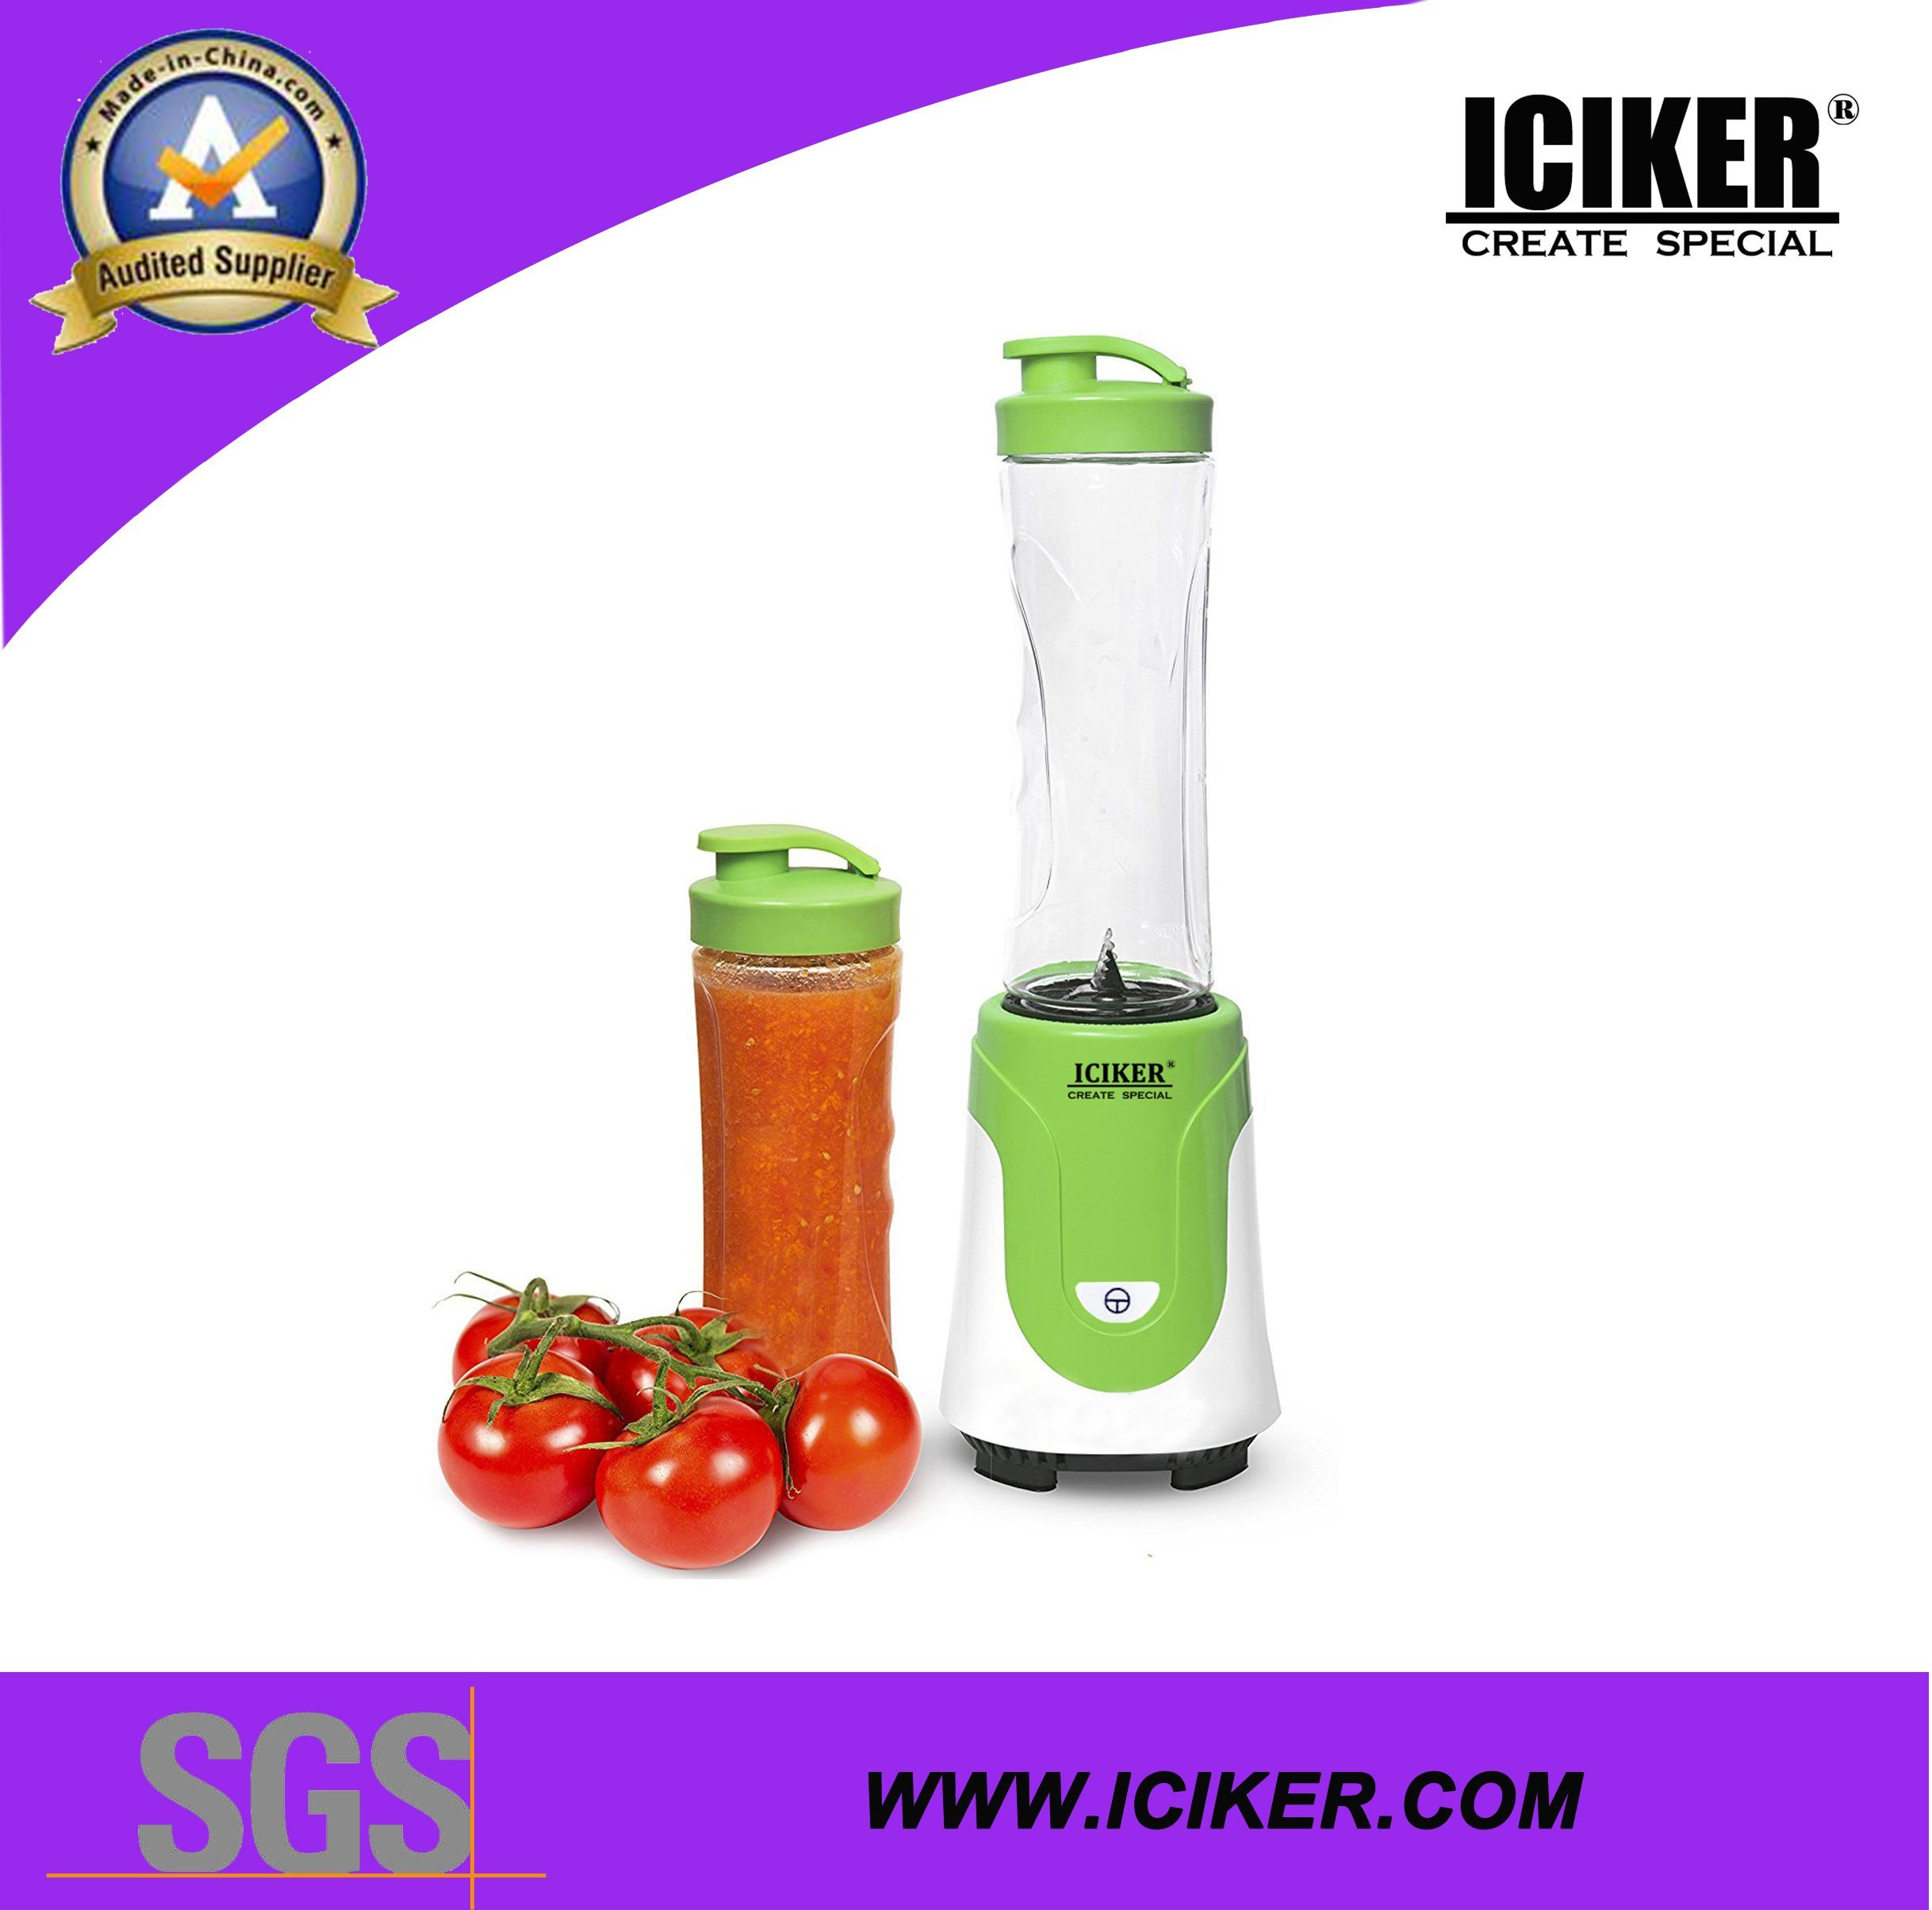 Home Appliance-Juicer Blender